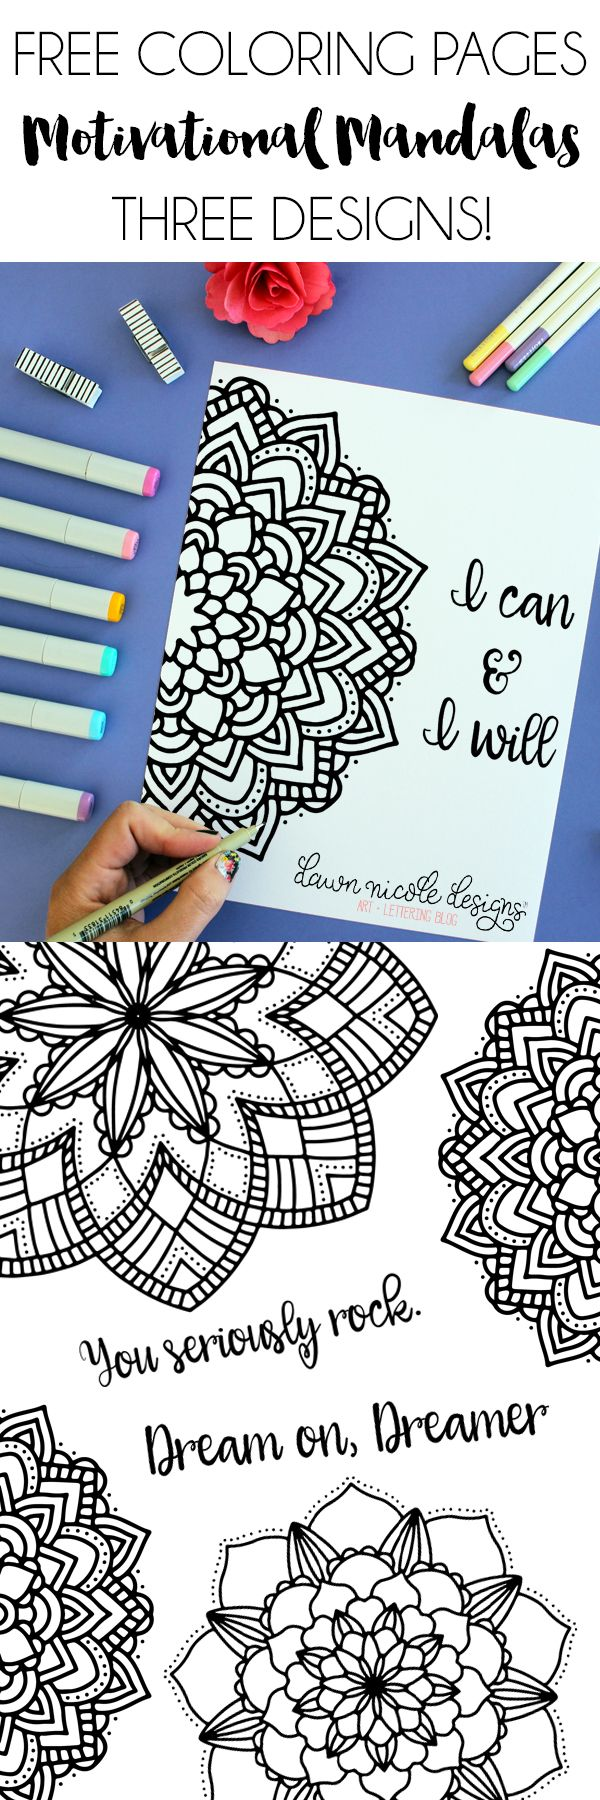 Motivational Mandala Free Coloring Pages (3 Design Options)! dawnnicoledesigns.com